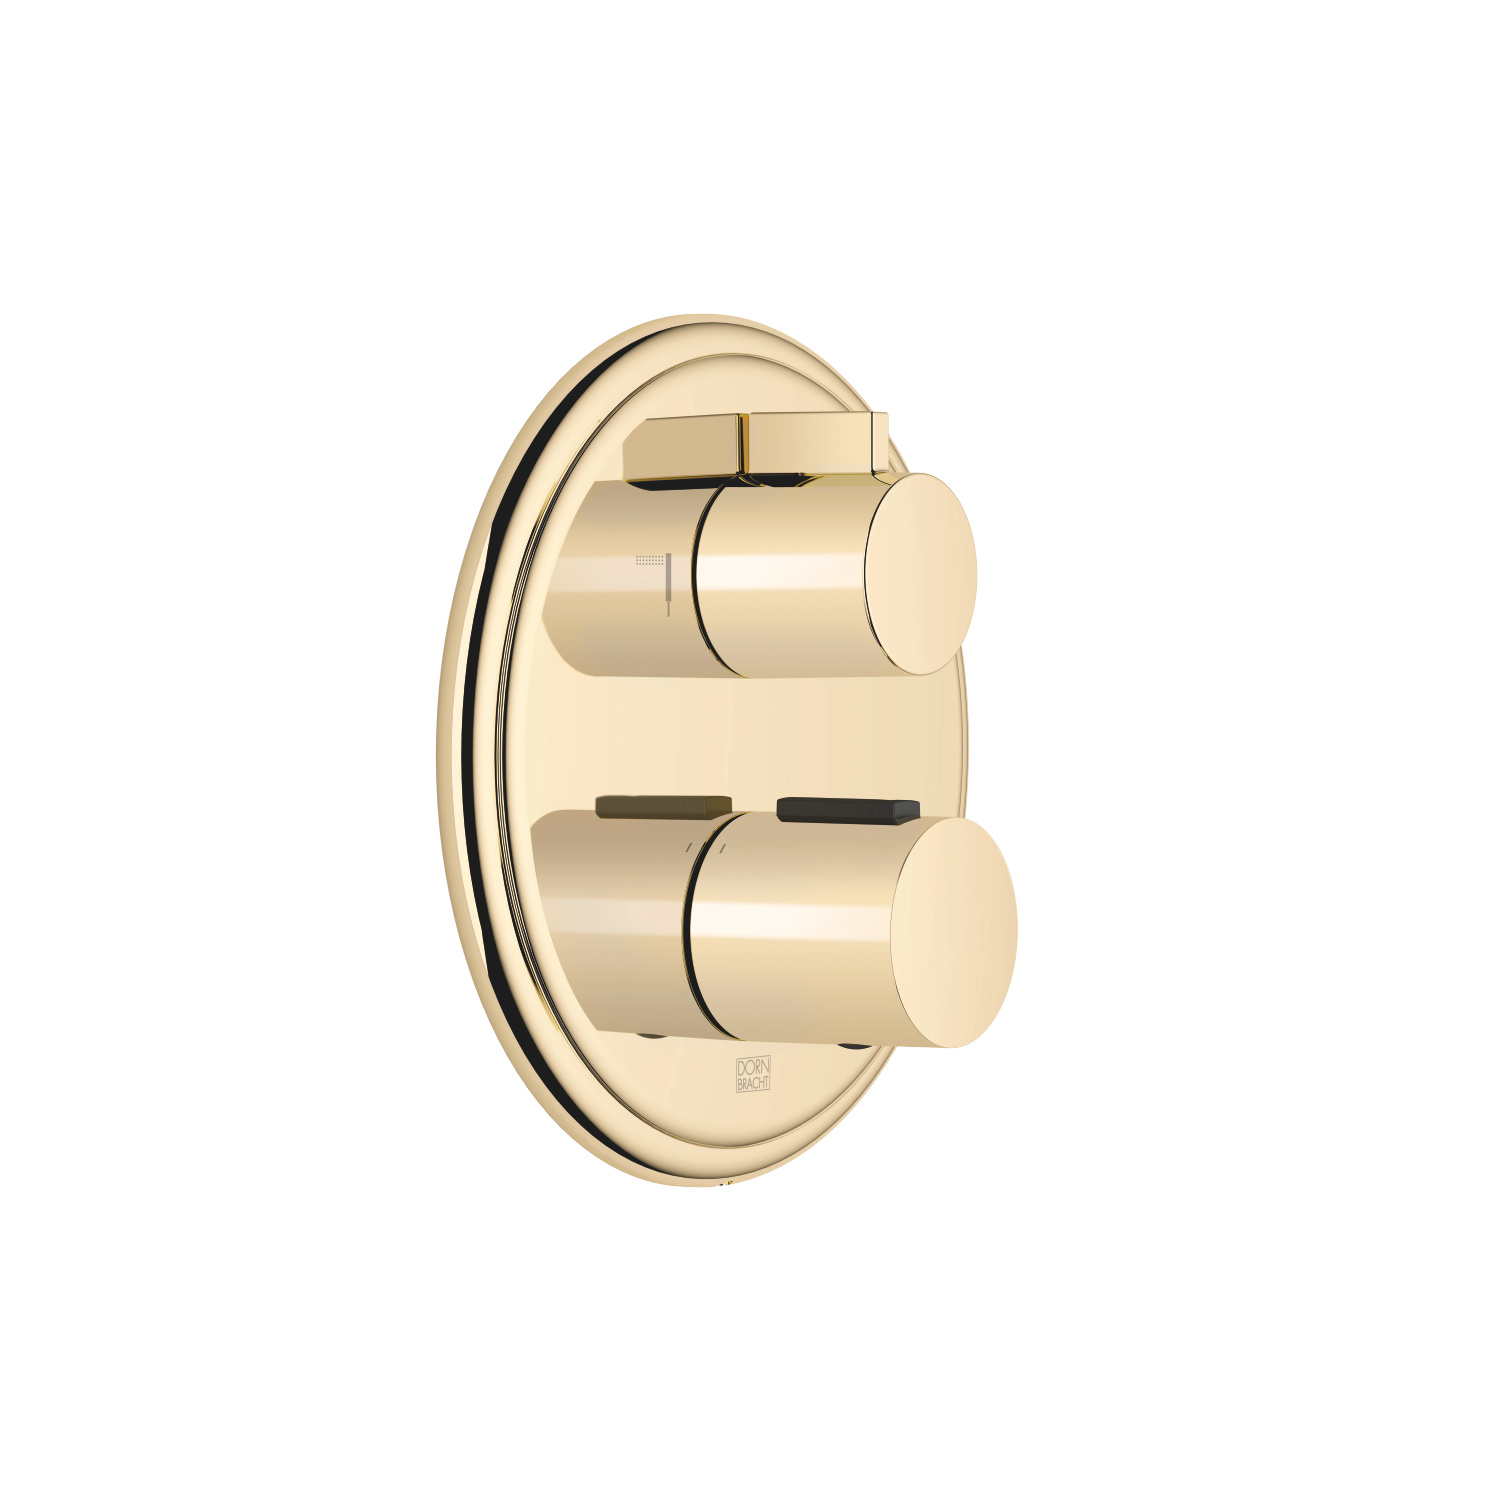 Concealed thermostat with two-way volume control - Durabrass - 36 426 977-09 0010